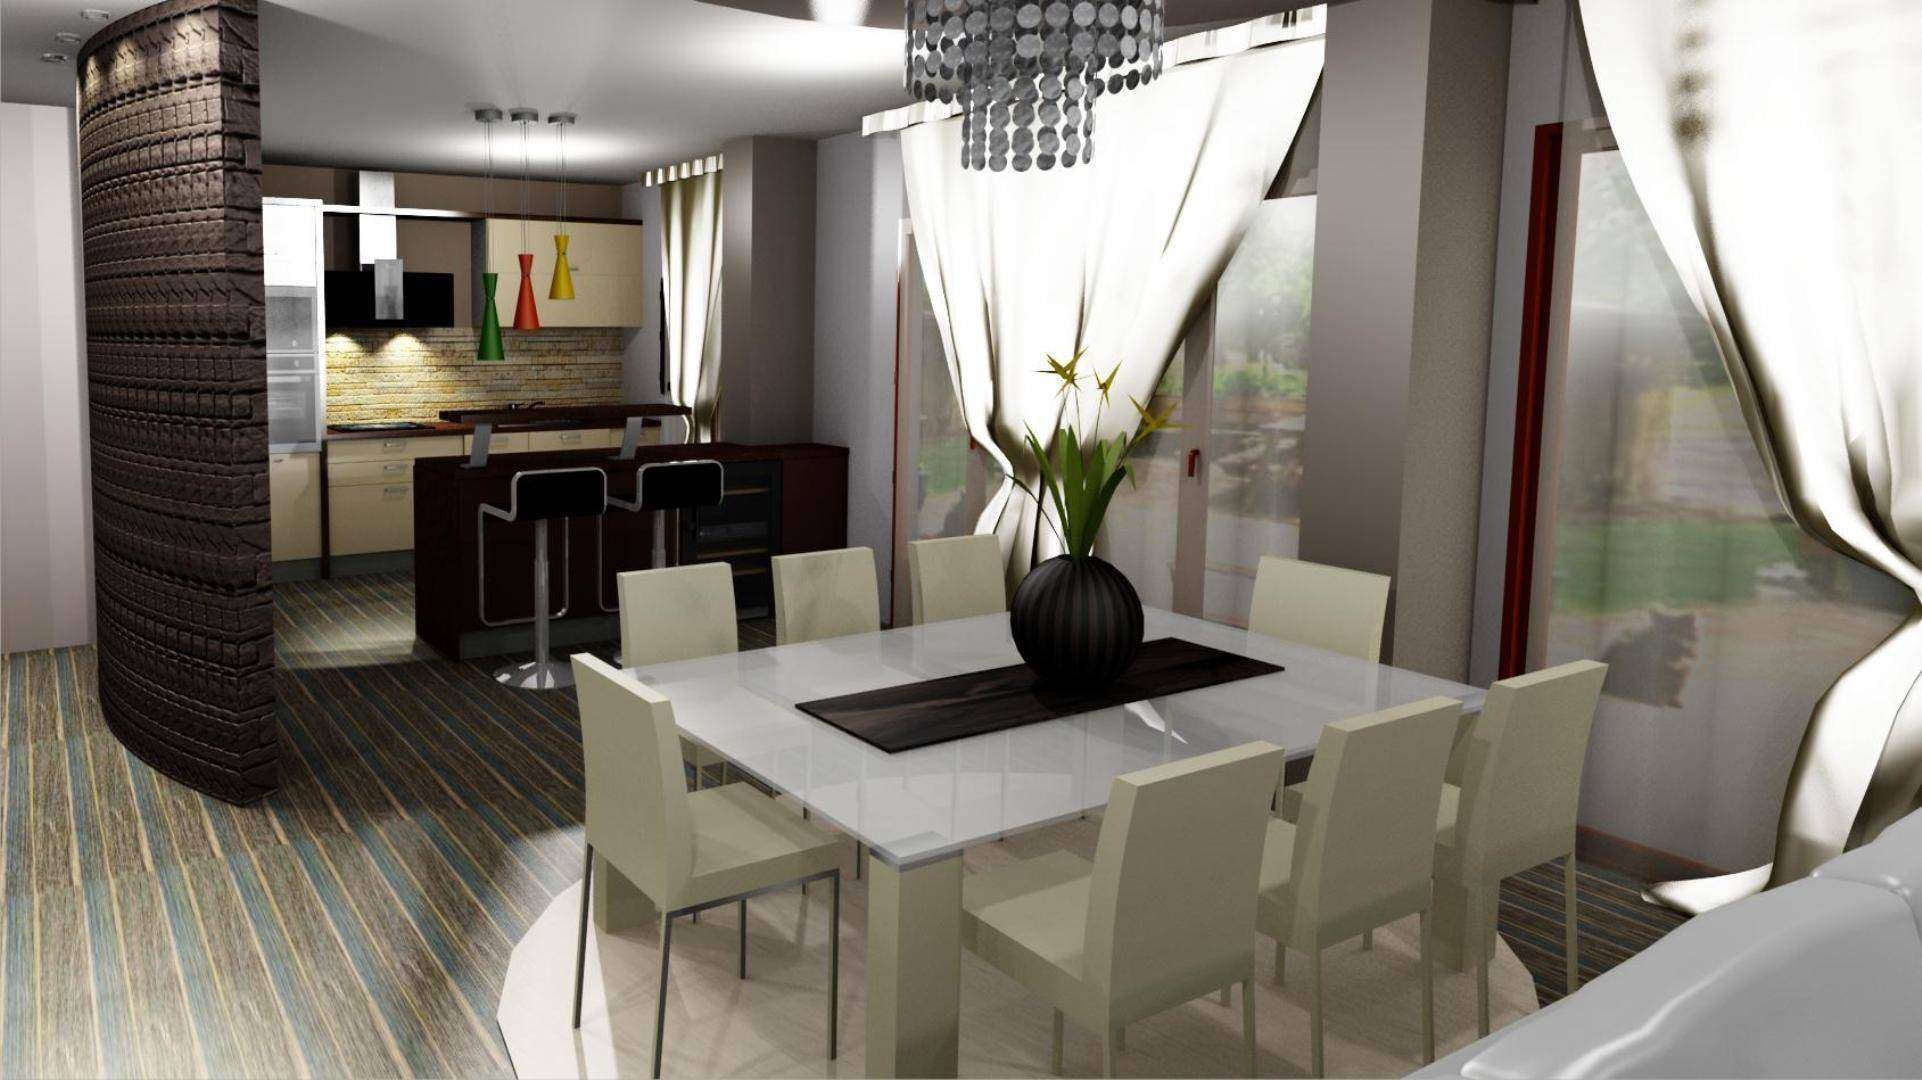 <a href=&quot;Proiect design interior 3d open space living cu bucatarie &quot;>proiect mobilare open space mobila la comanda<img src='https://www.unican.ro/wp-content/themes/vita/img/dreapta.png' class='pull-right hidden-xs' style='margin-right:-10px;margin-top:-10px; max-height:41px'></a>